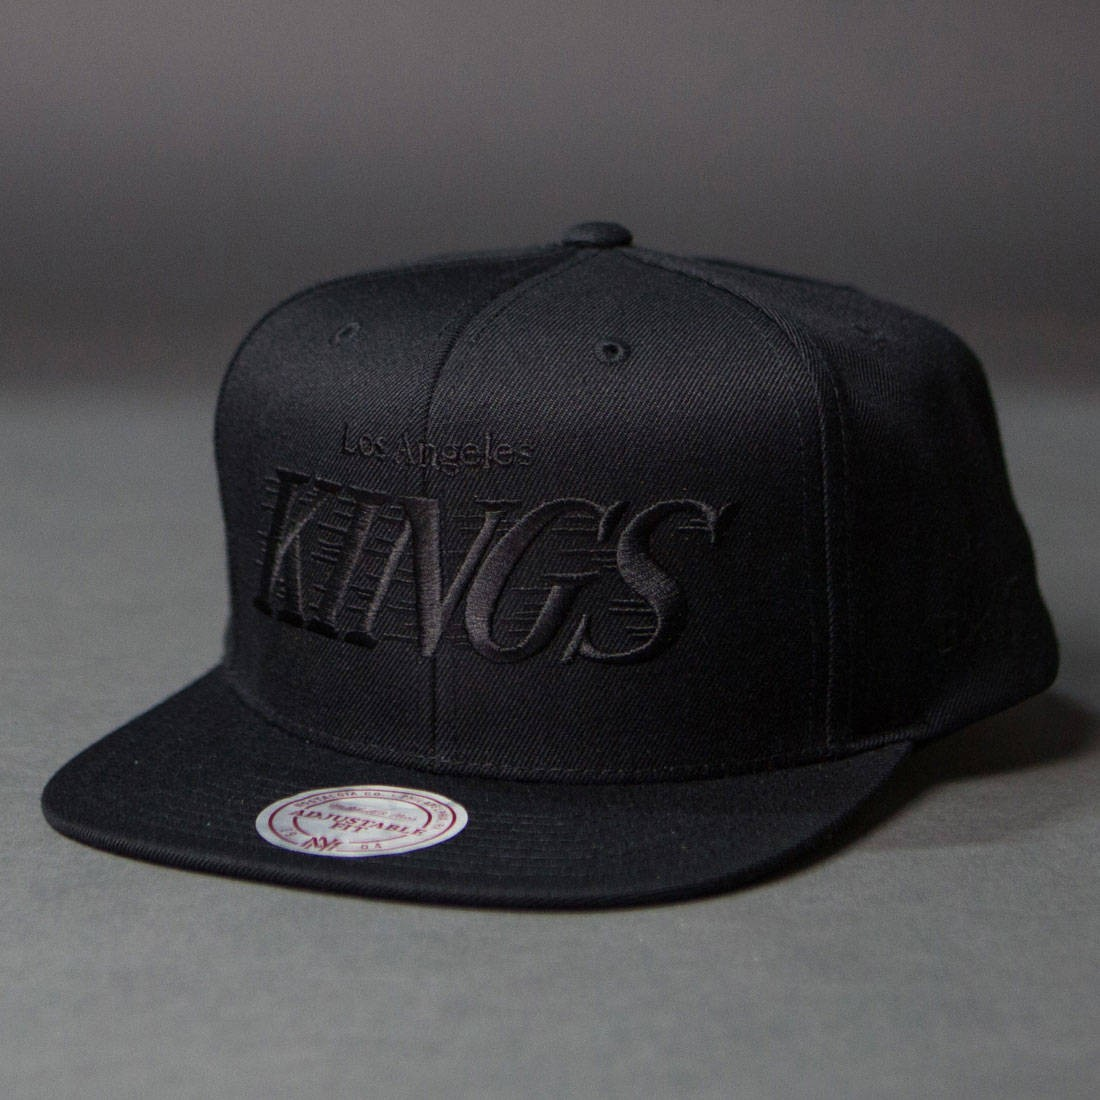 BAIT x NHL x Mitchell And Ness Los Angeles Kings Classic Snapback ... 947cae4b23e